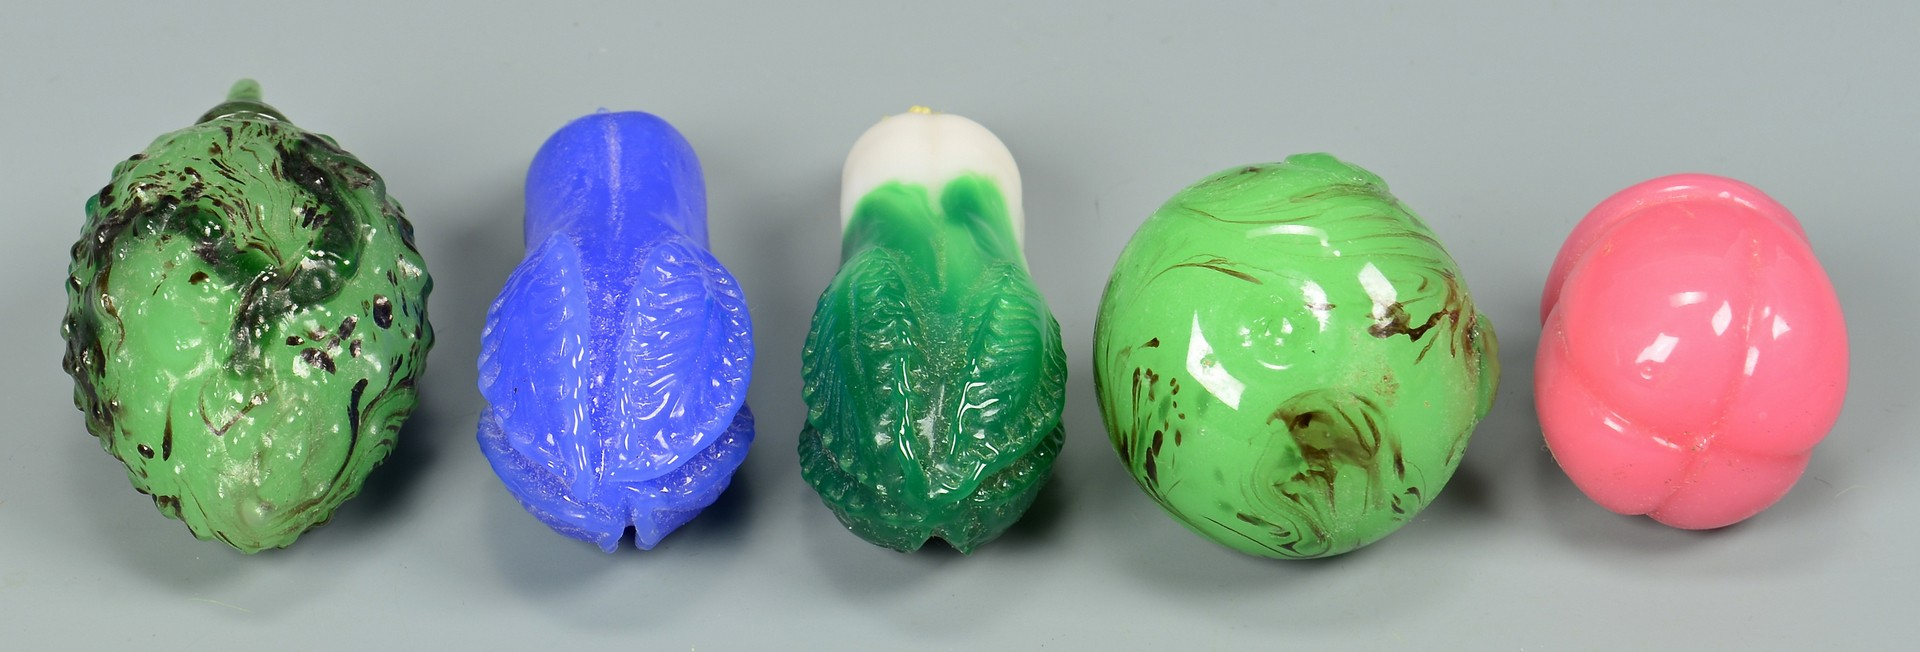 Lot 4010181: Peking Glass Fruit Snuff Bottles and ornaments